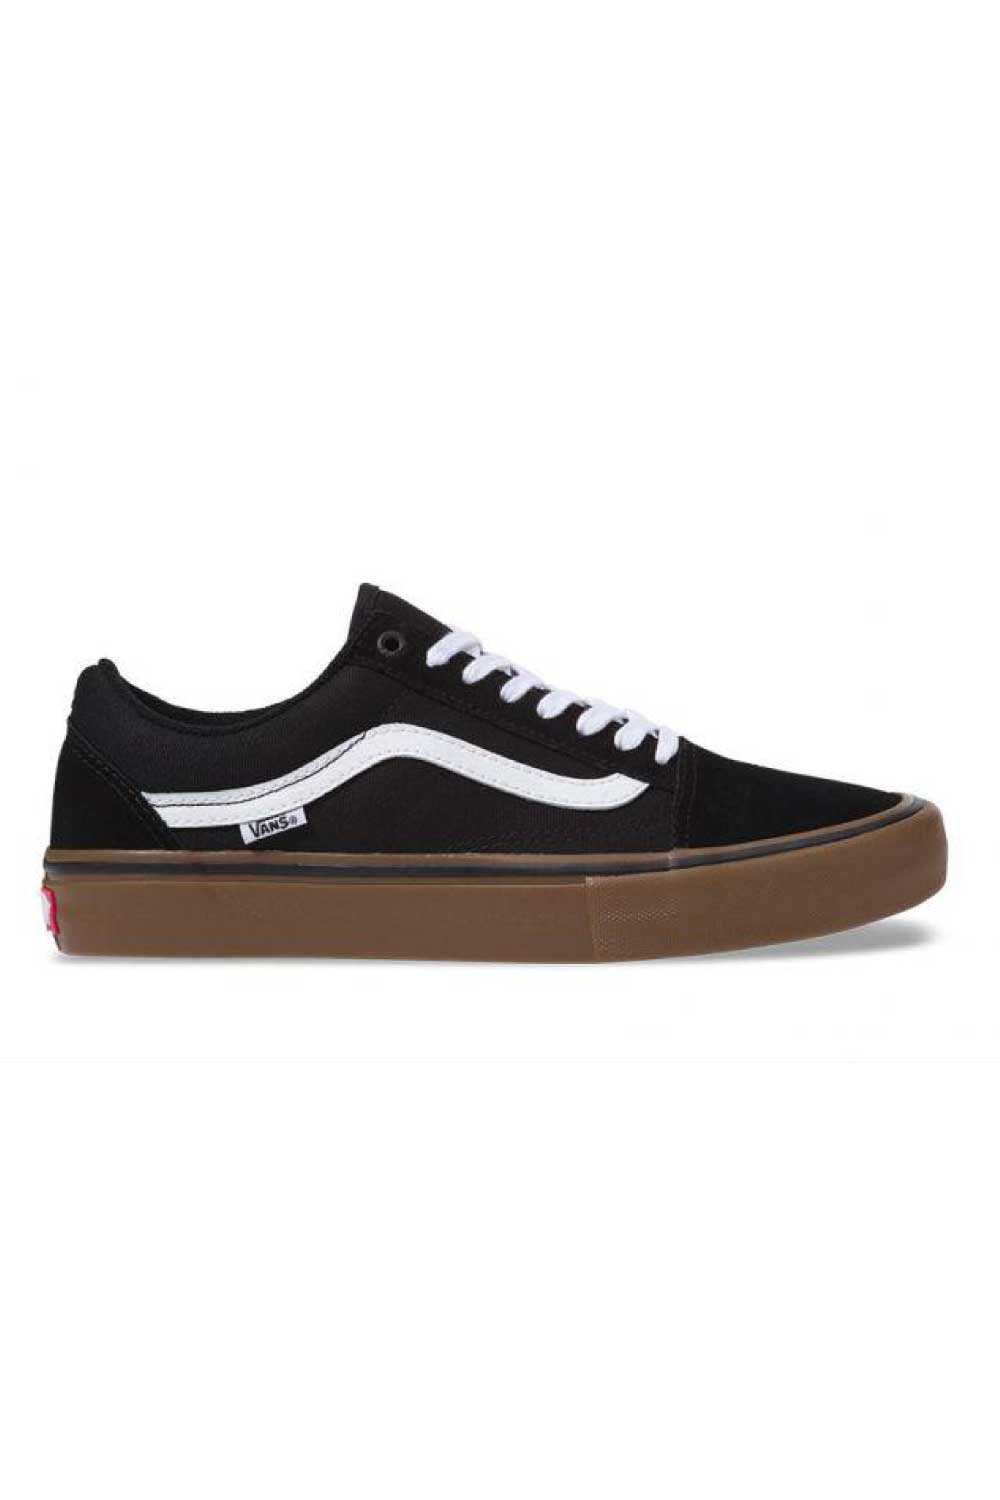 Vans Old Skool Pro Shoe Black/White/Gum